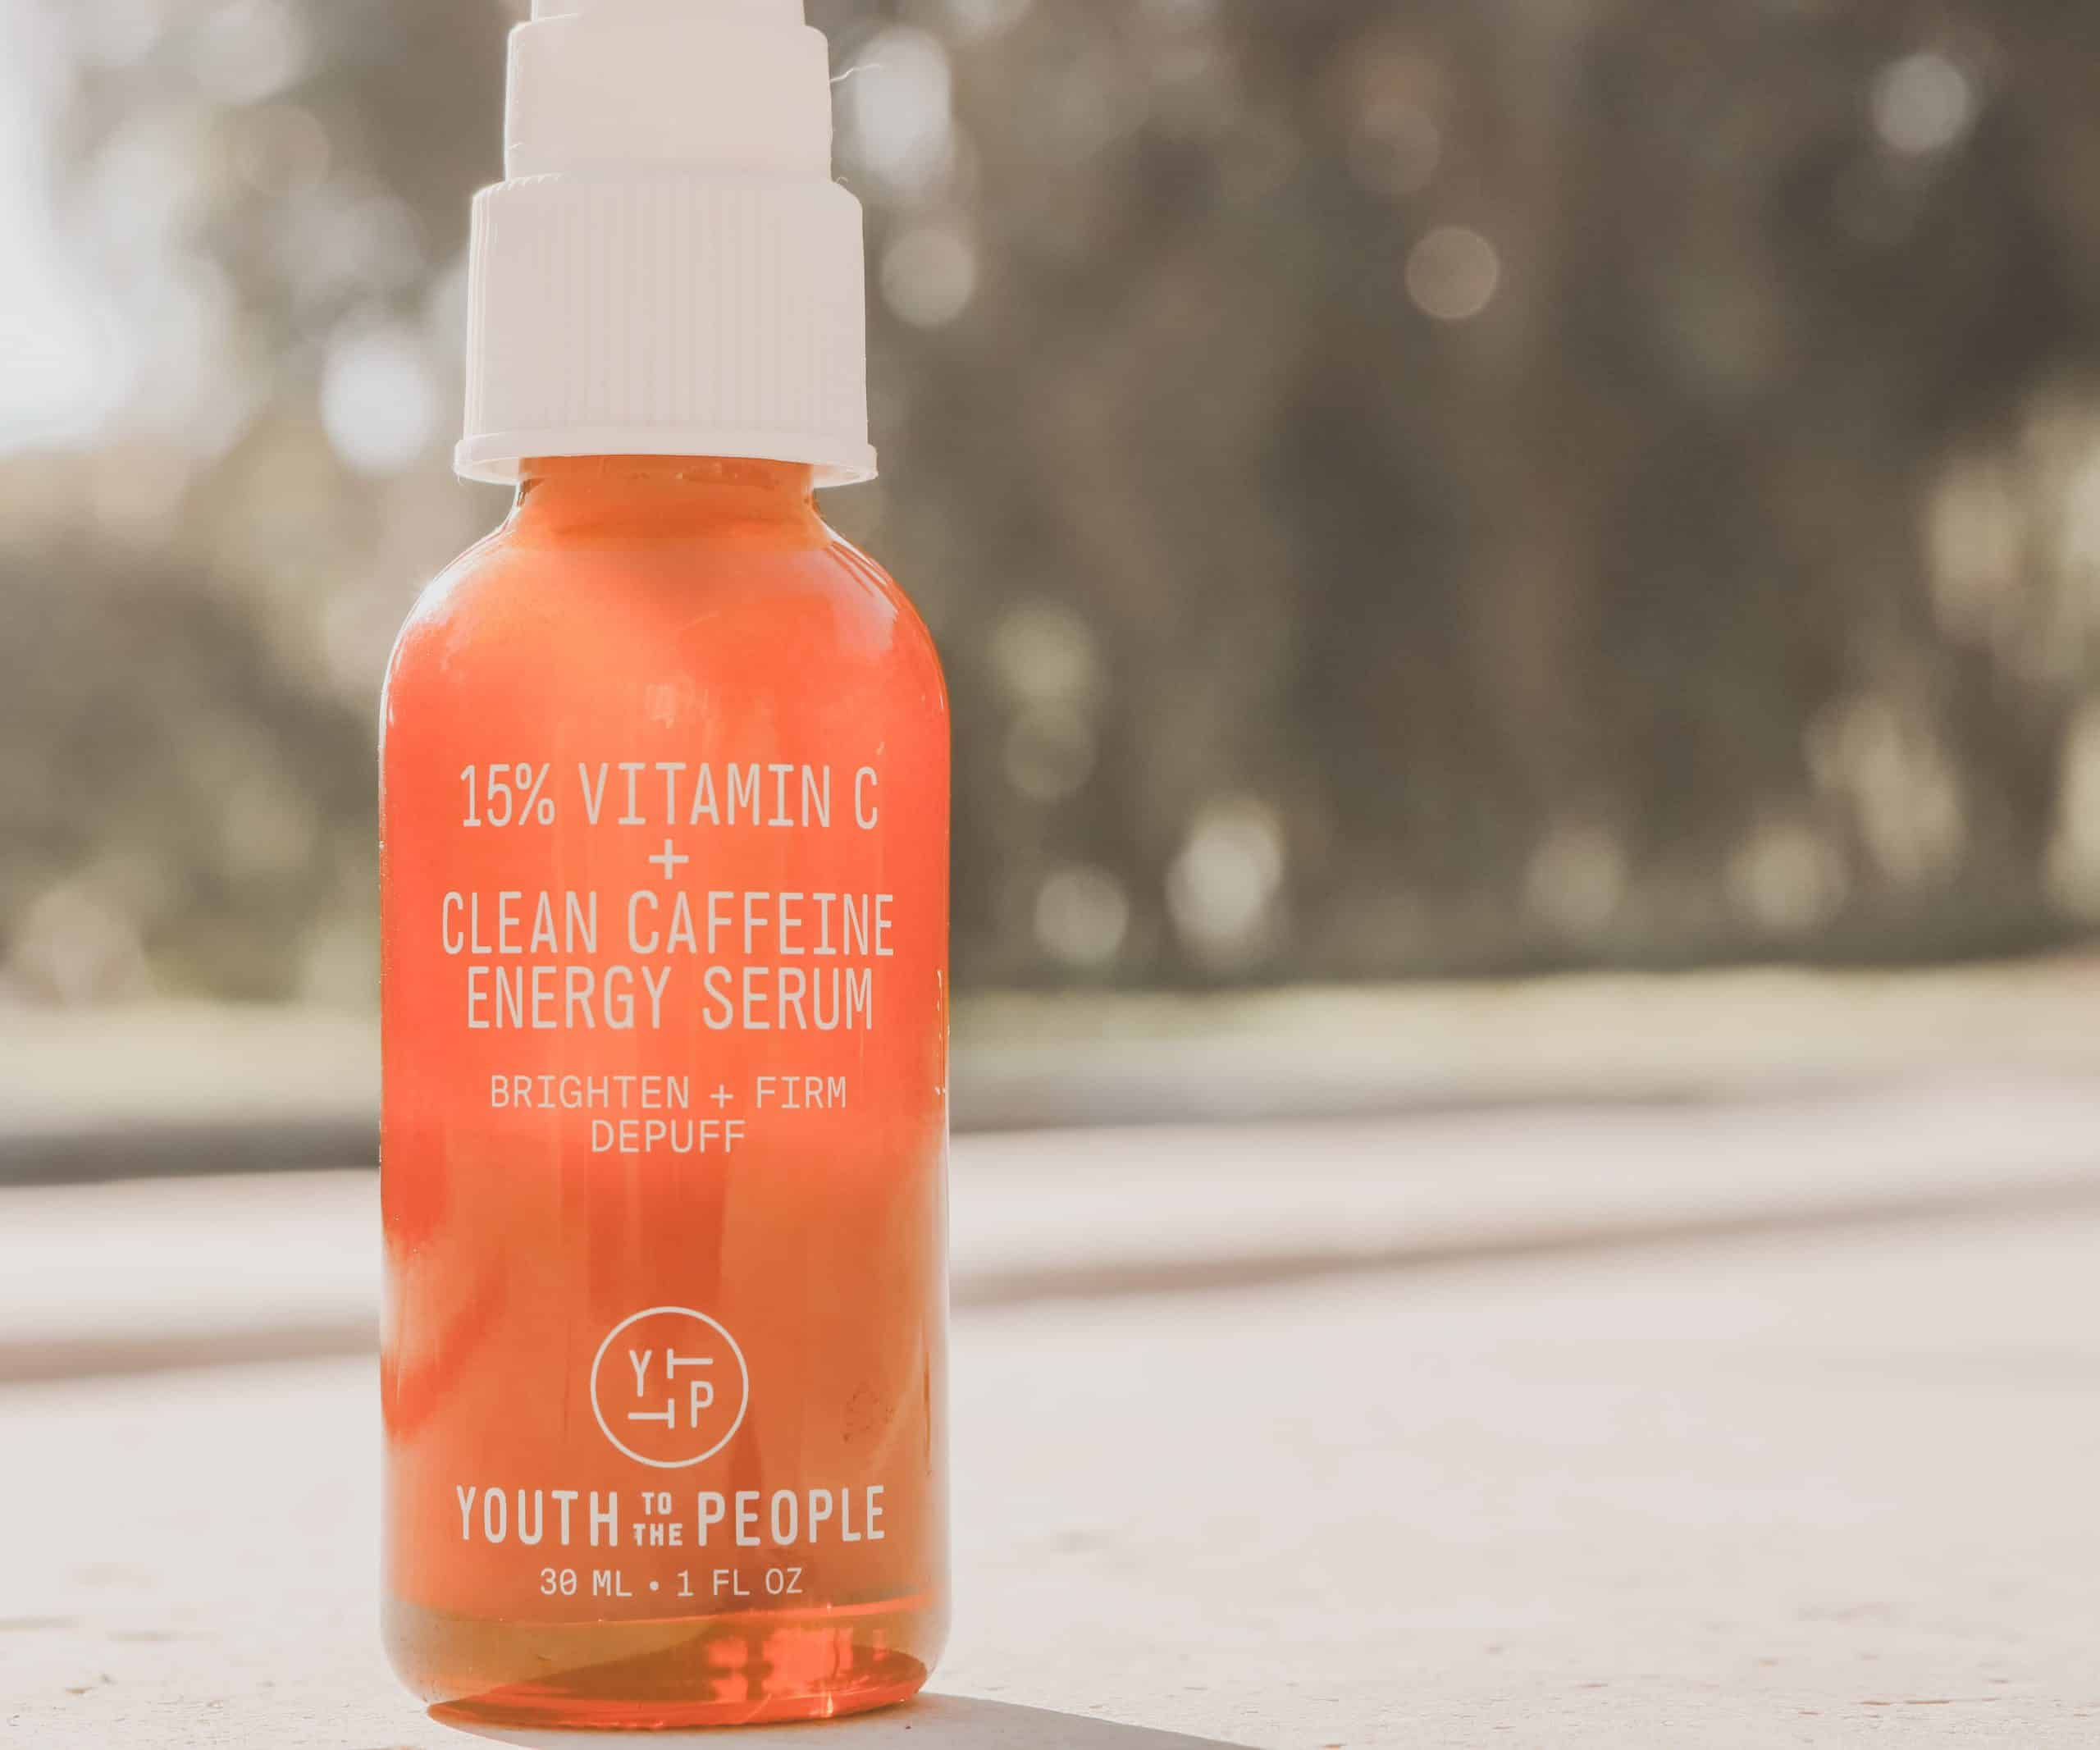 youth to the people vitamin c serum